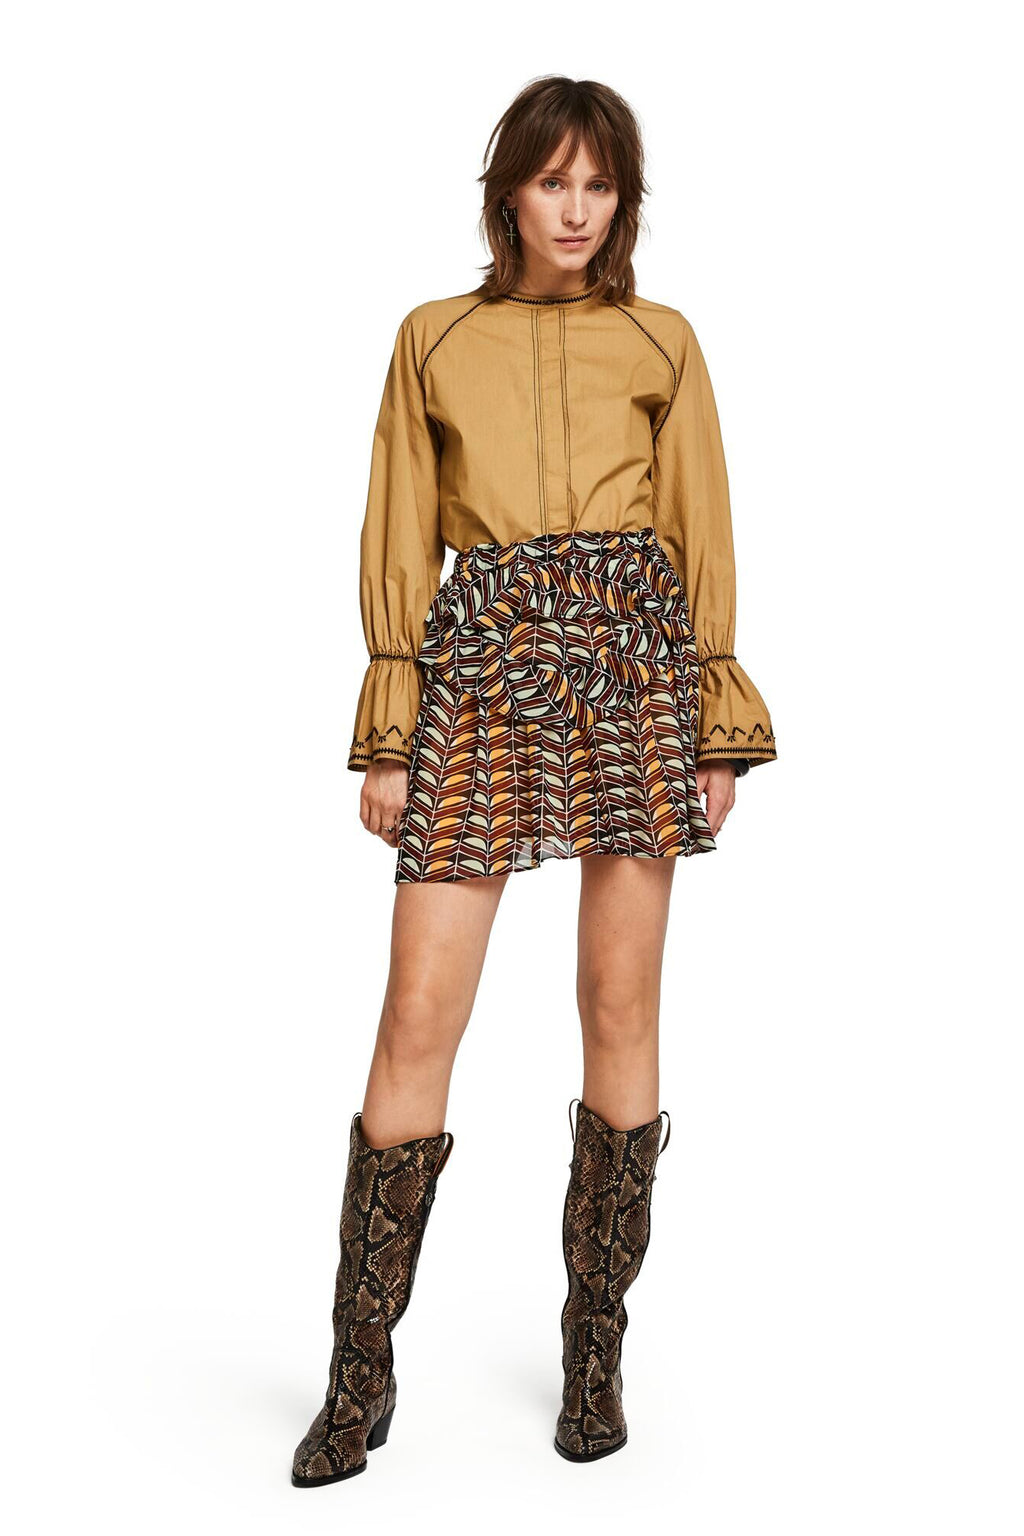 SCOTCH AND SODA - Printed Ruffled Skirt online at PAYA boutique